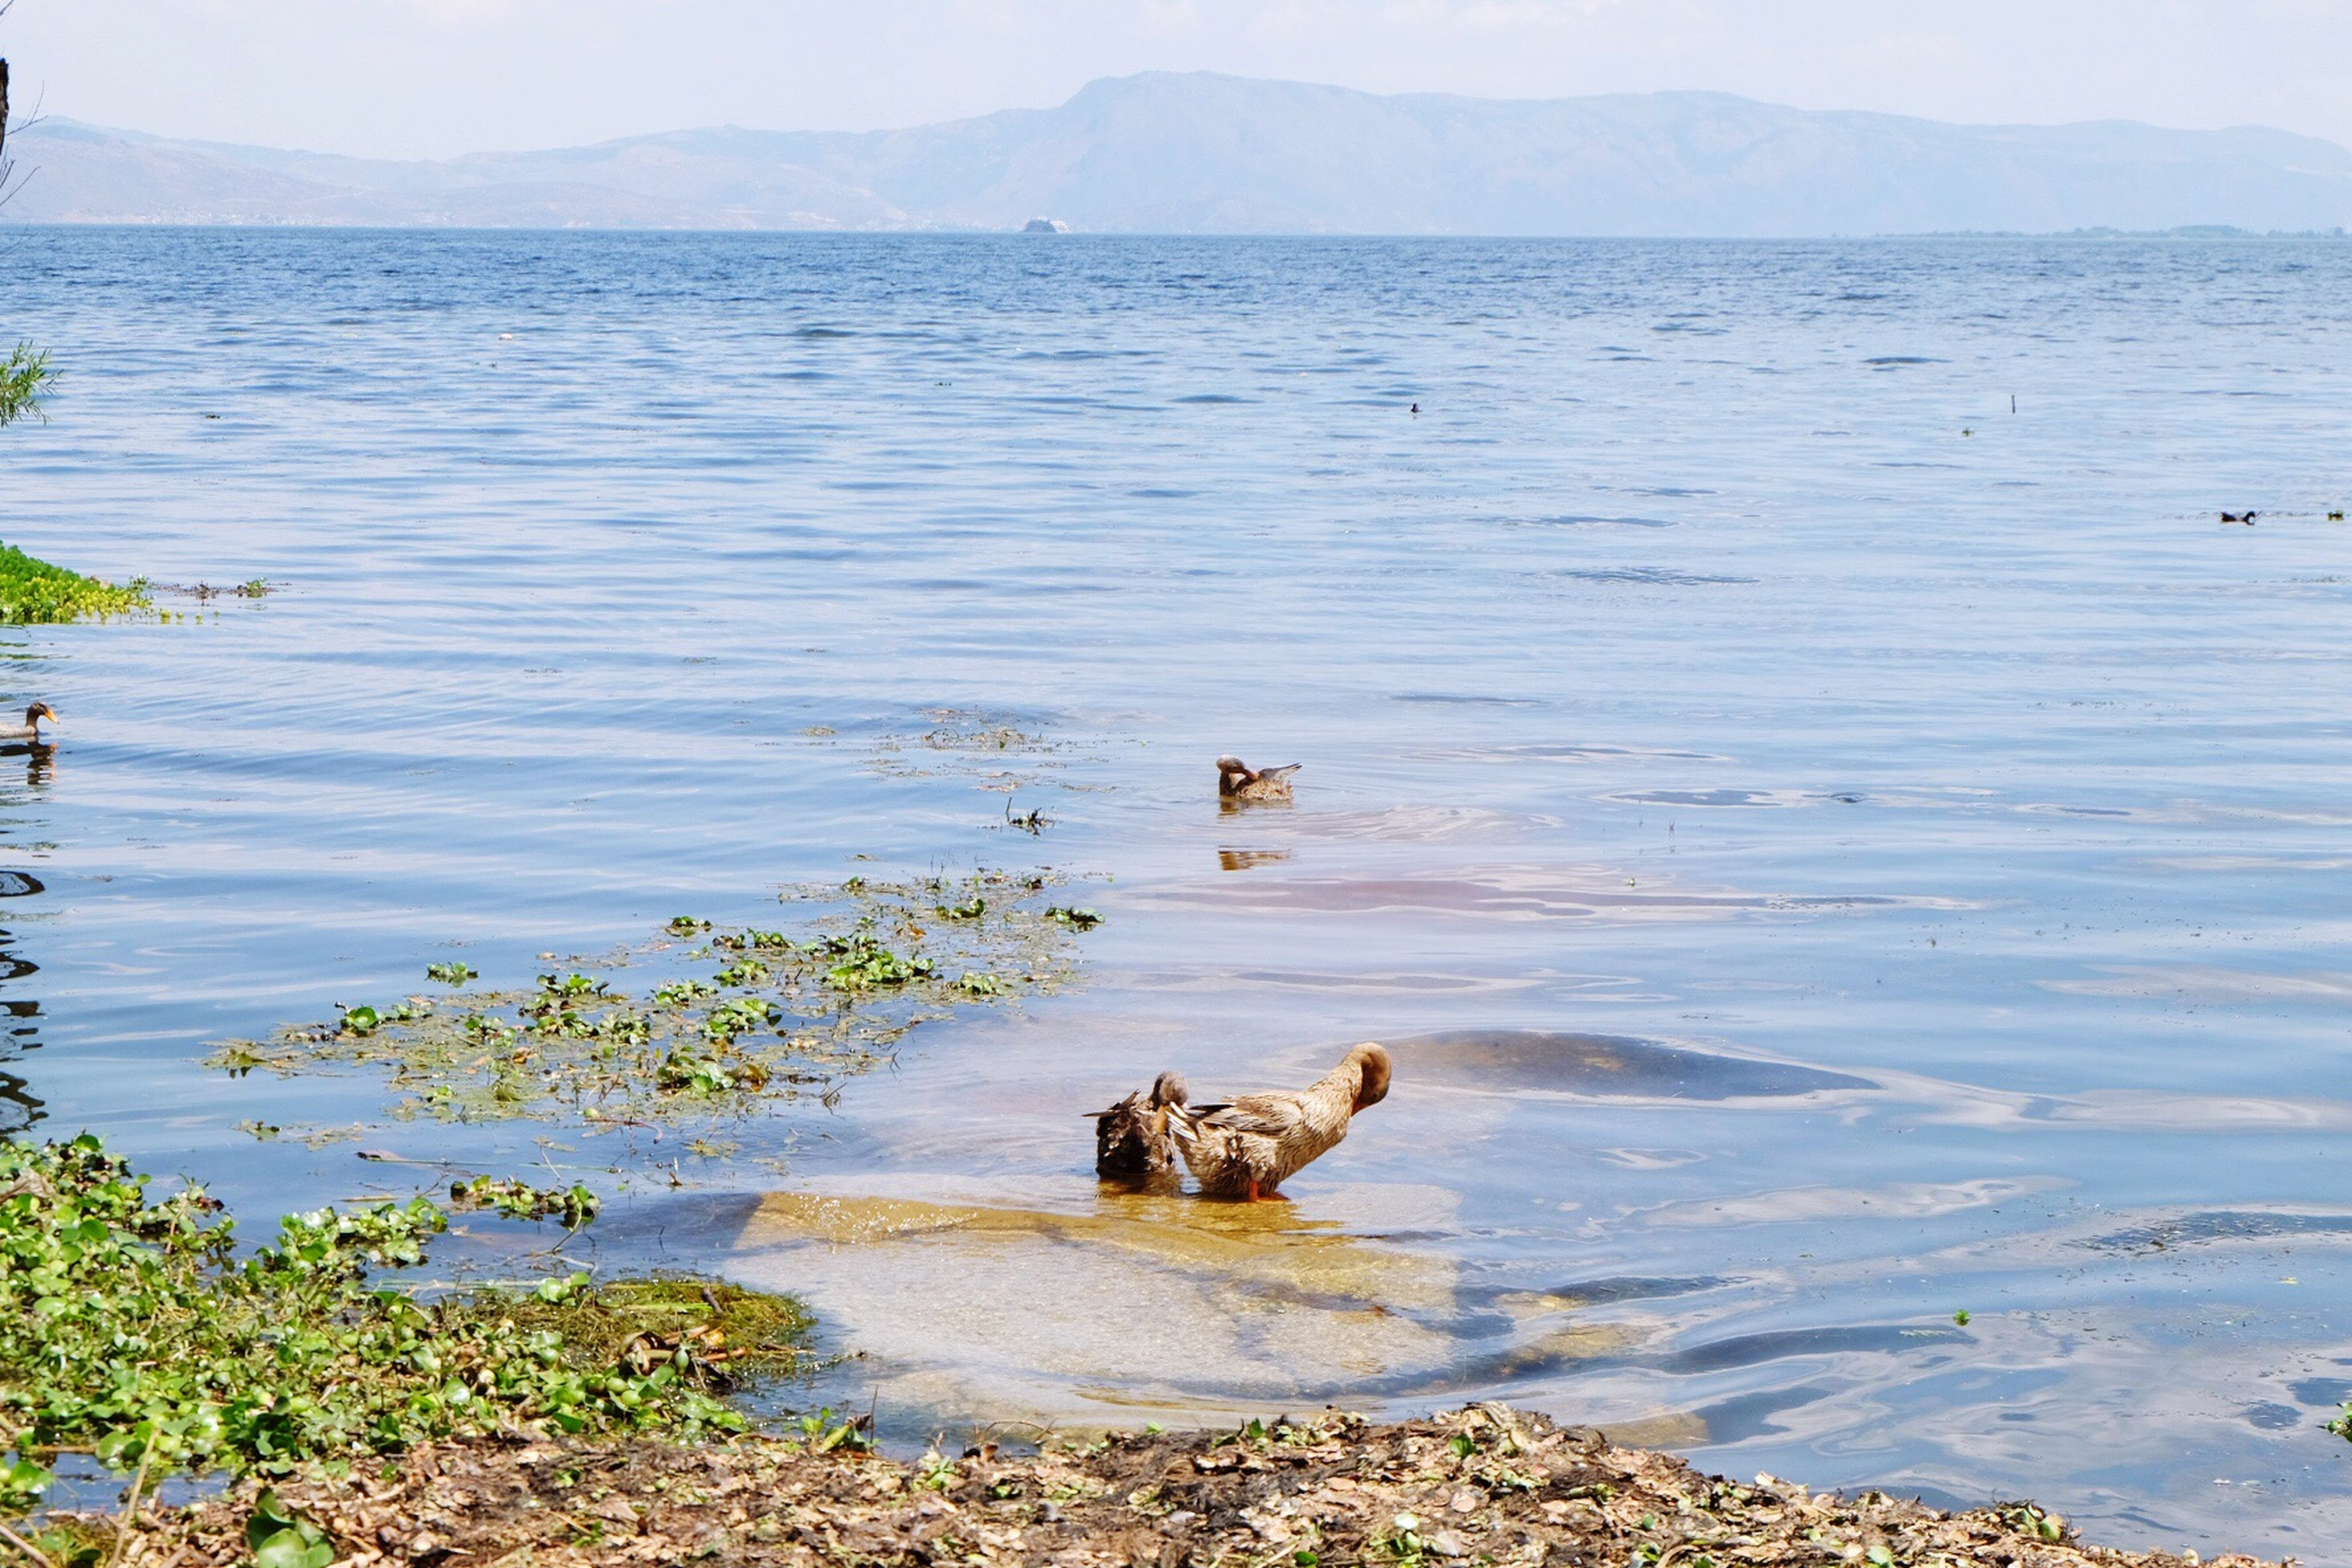 animal themes, water, one animal, animals in the wild, mammal, wildlife, lake, swimming, sea, dog, nature, tranquility, domestic animals, pets, tranquil scene, beauty in nature, scenics, bird, mountain, high angle view